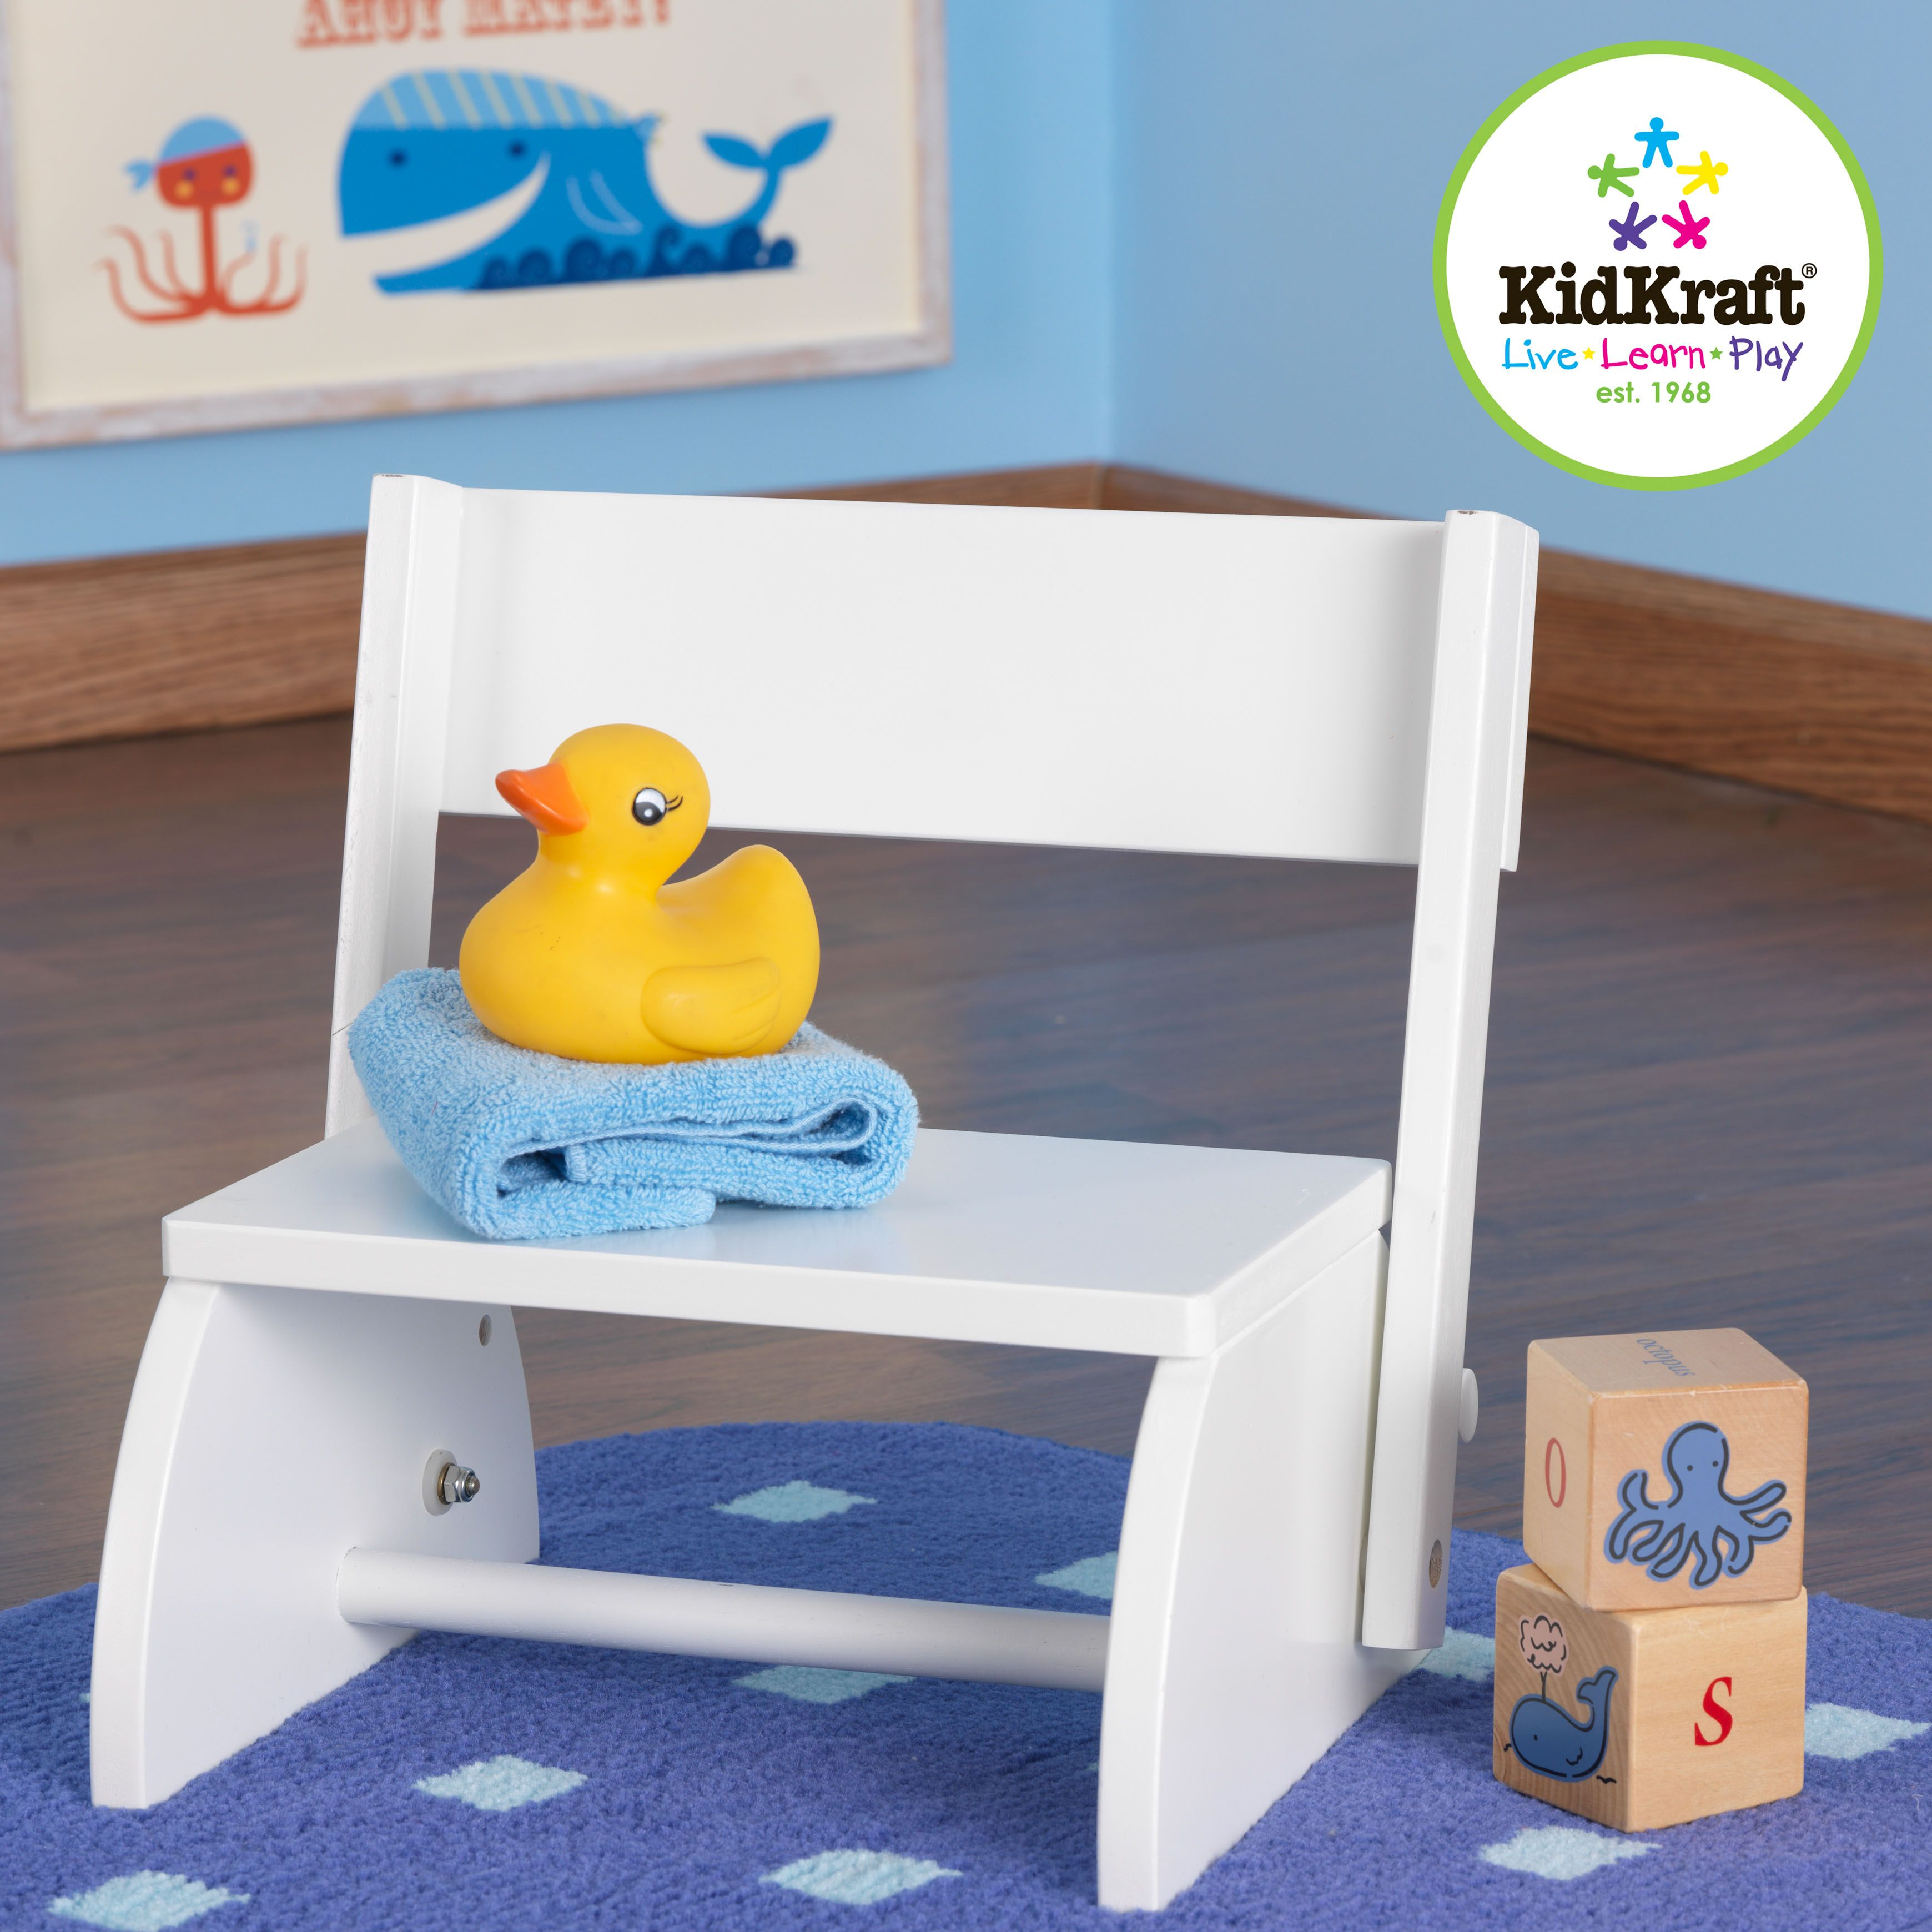 Kidskraft White colored Flip Stool From Buy Buy Baby ($37.99), could ask friend to paint/personalize? Also could use as time out chair?